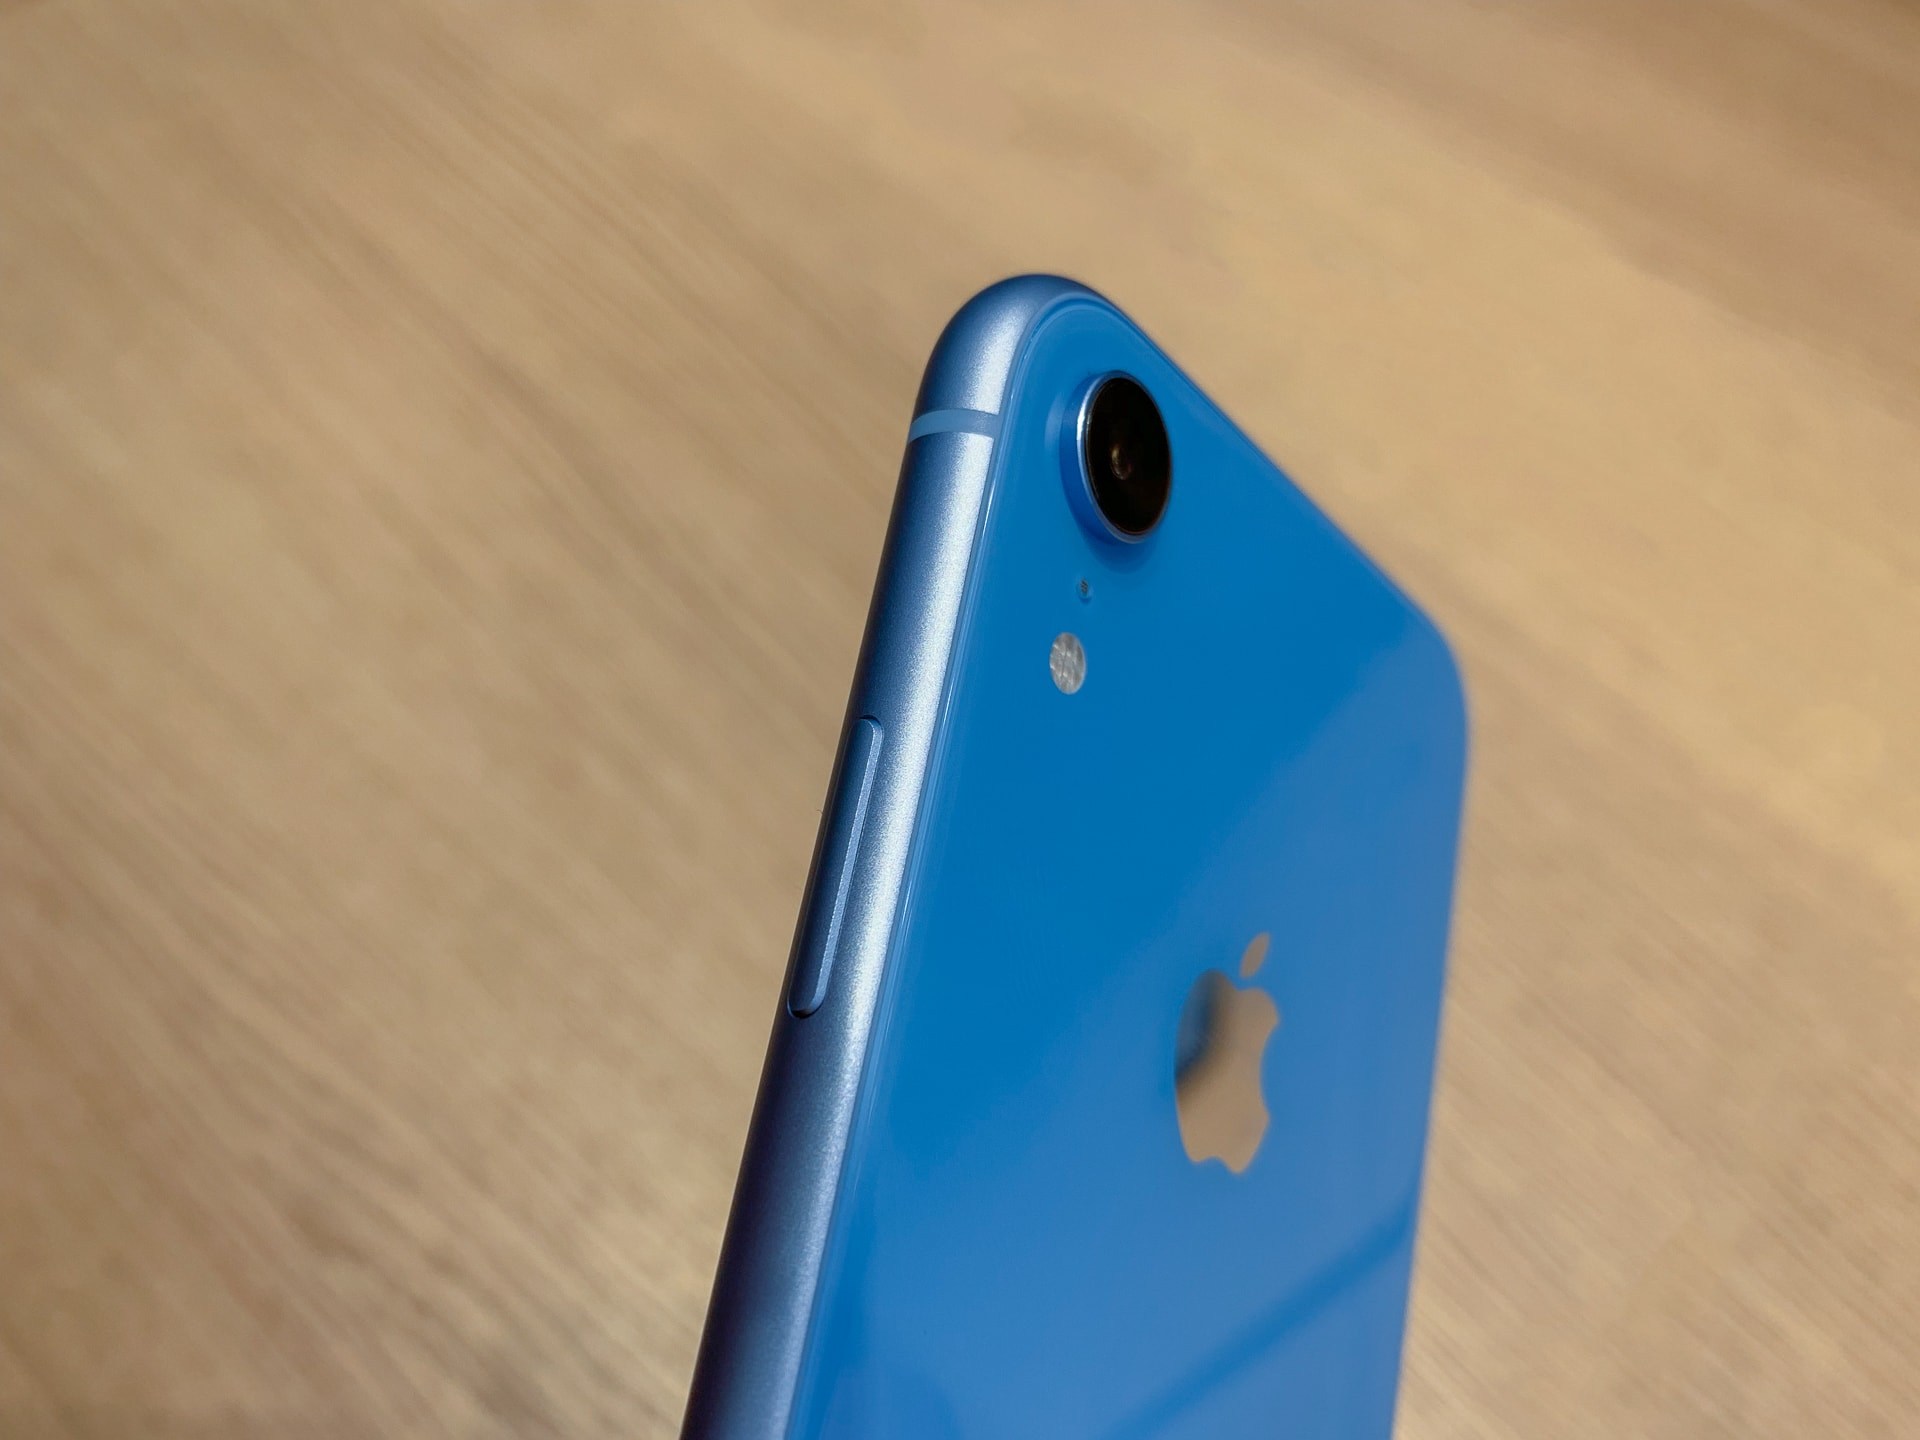 iPhone XR in Blau mit einer Linse, Hack4Life, Fabian Geissler, Review, Bericht, Apple, iOS 12